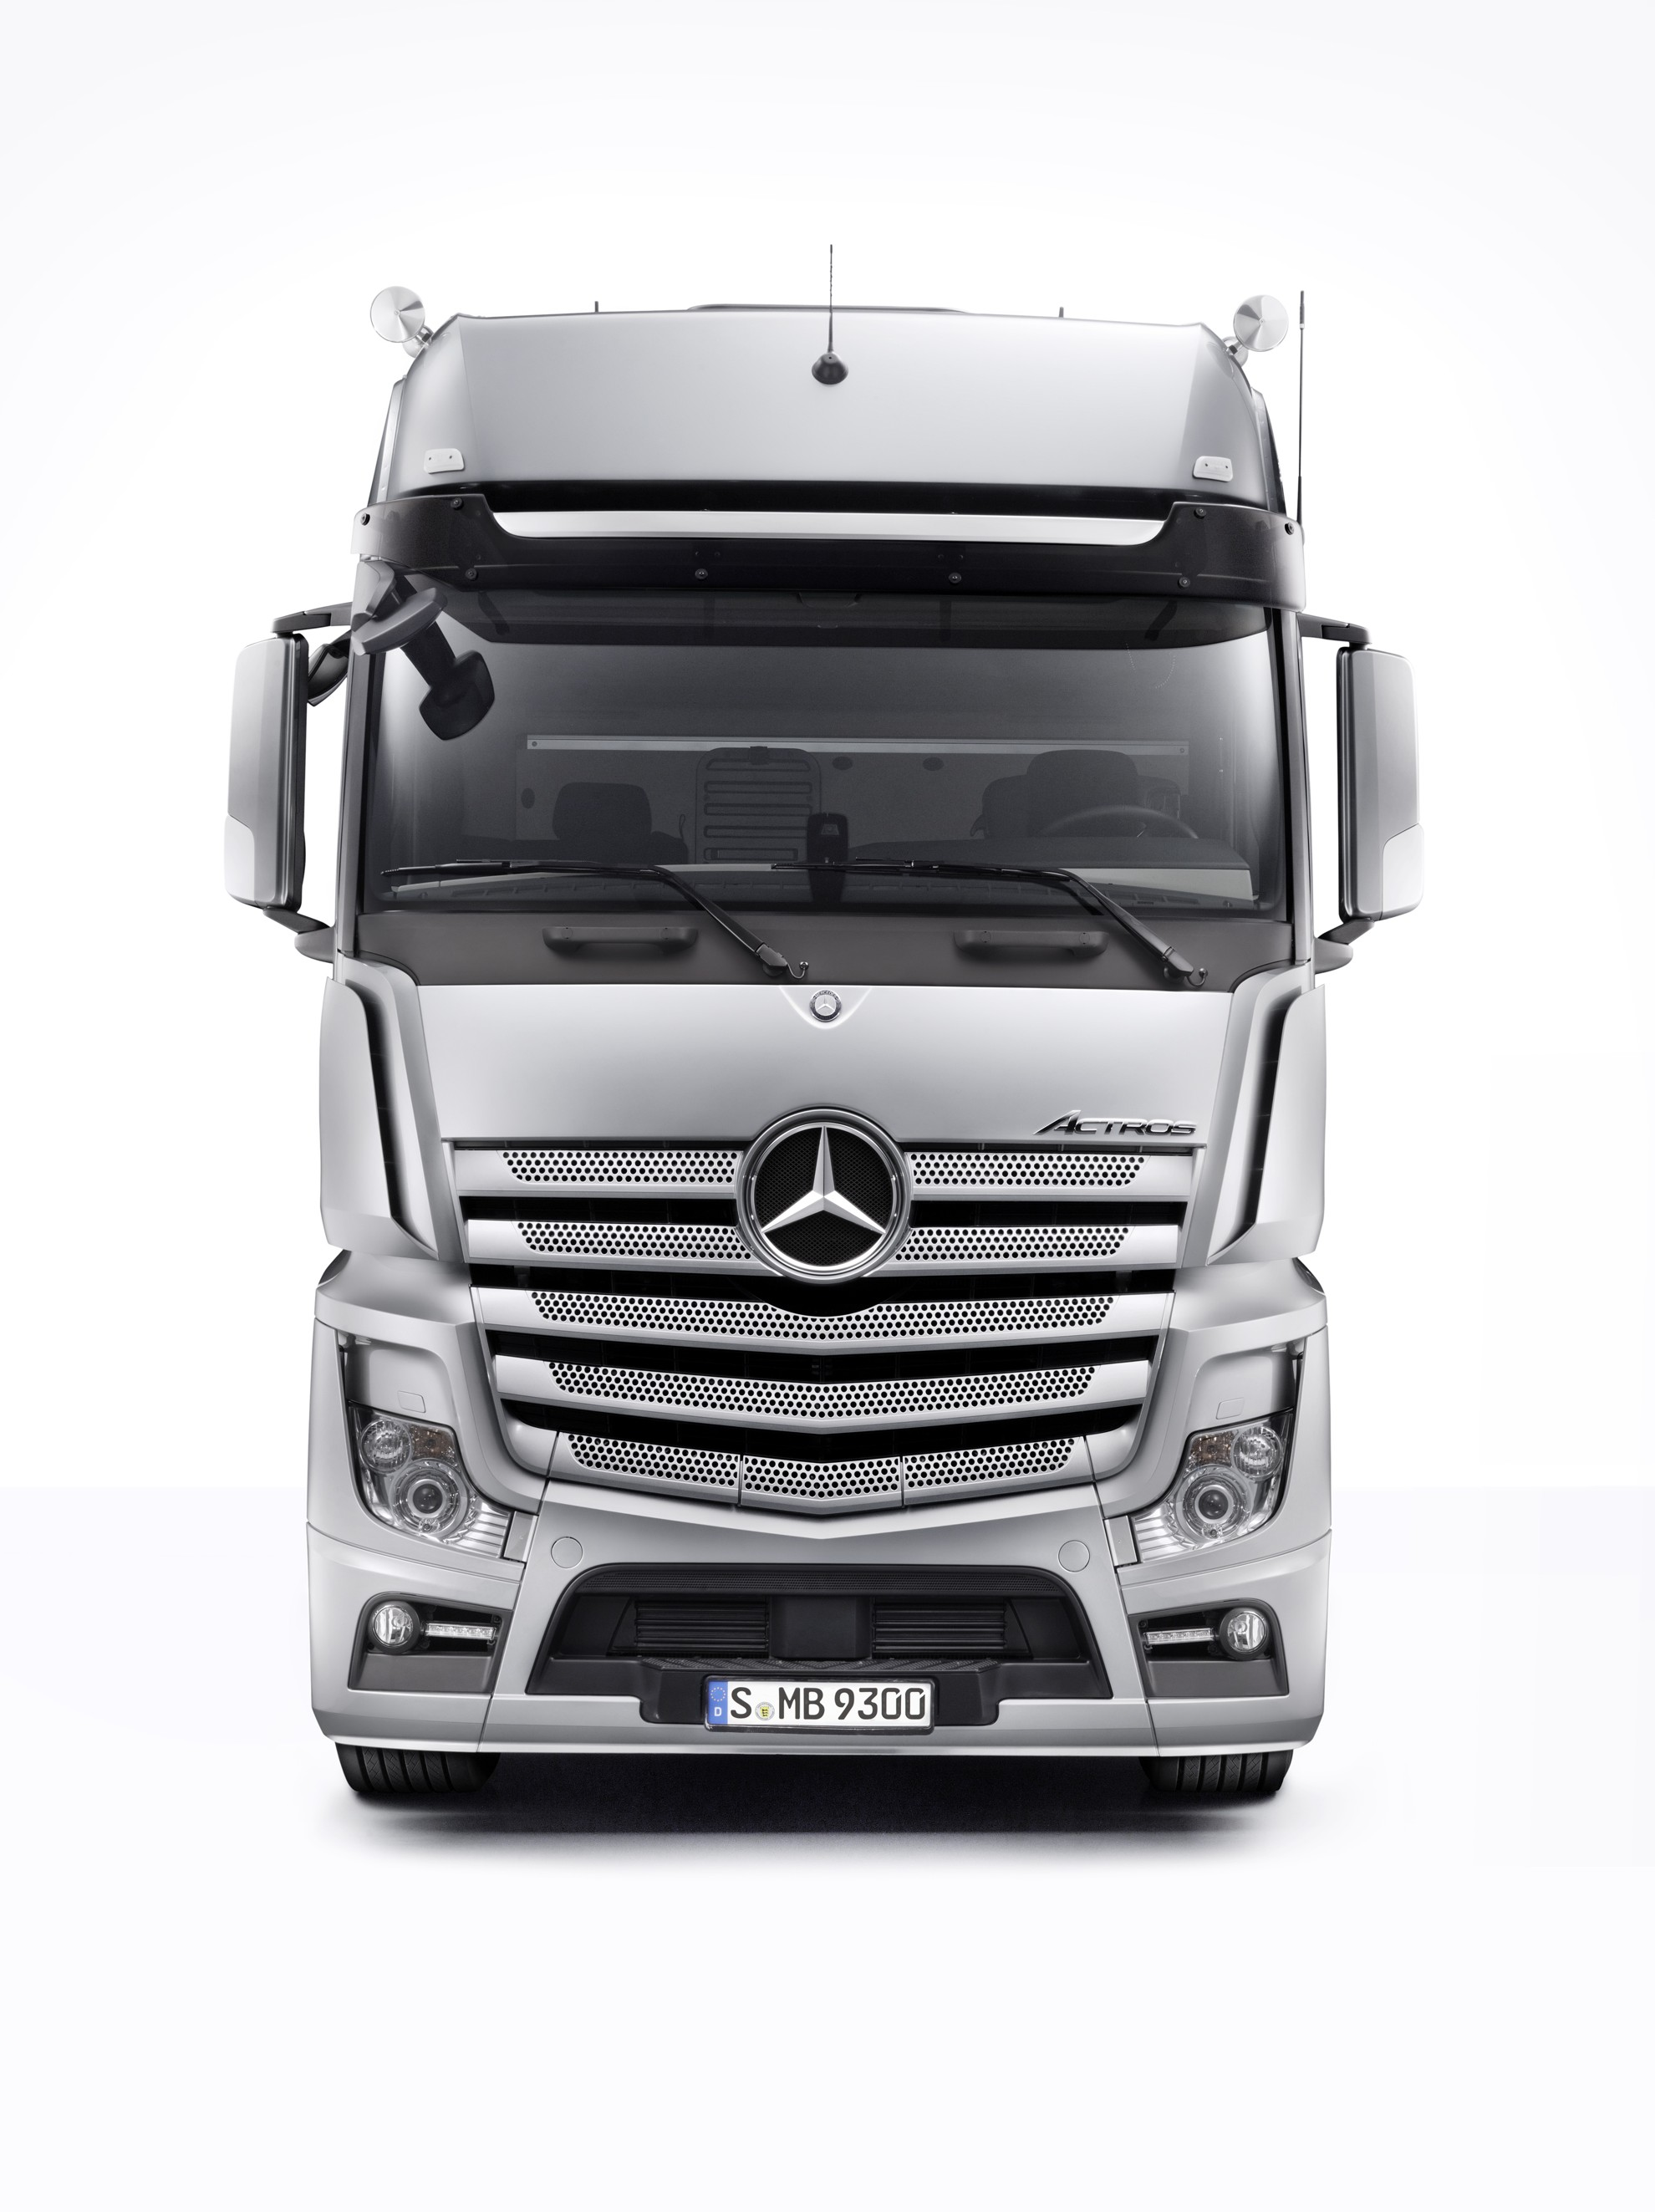 Mercedes Benz Actros Wins International Design Award Once